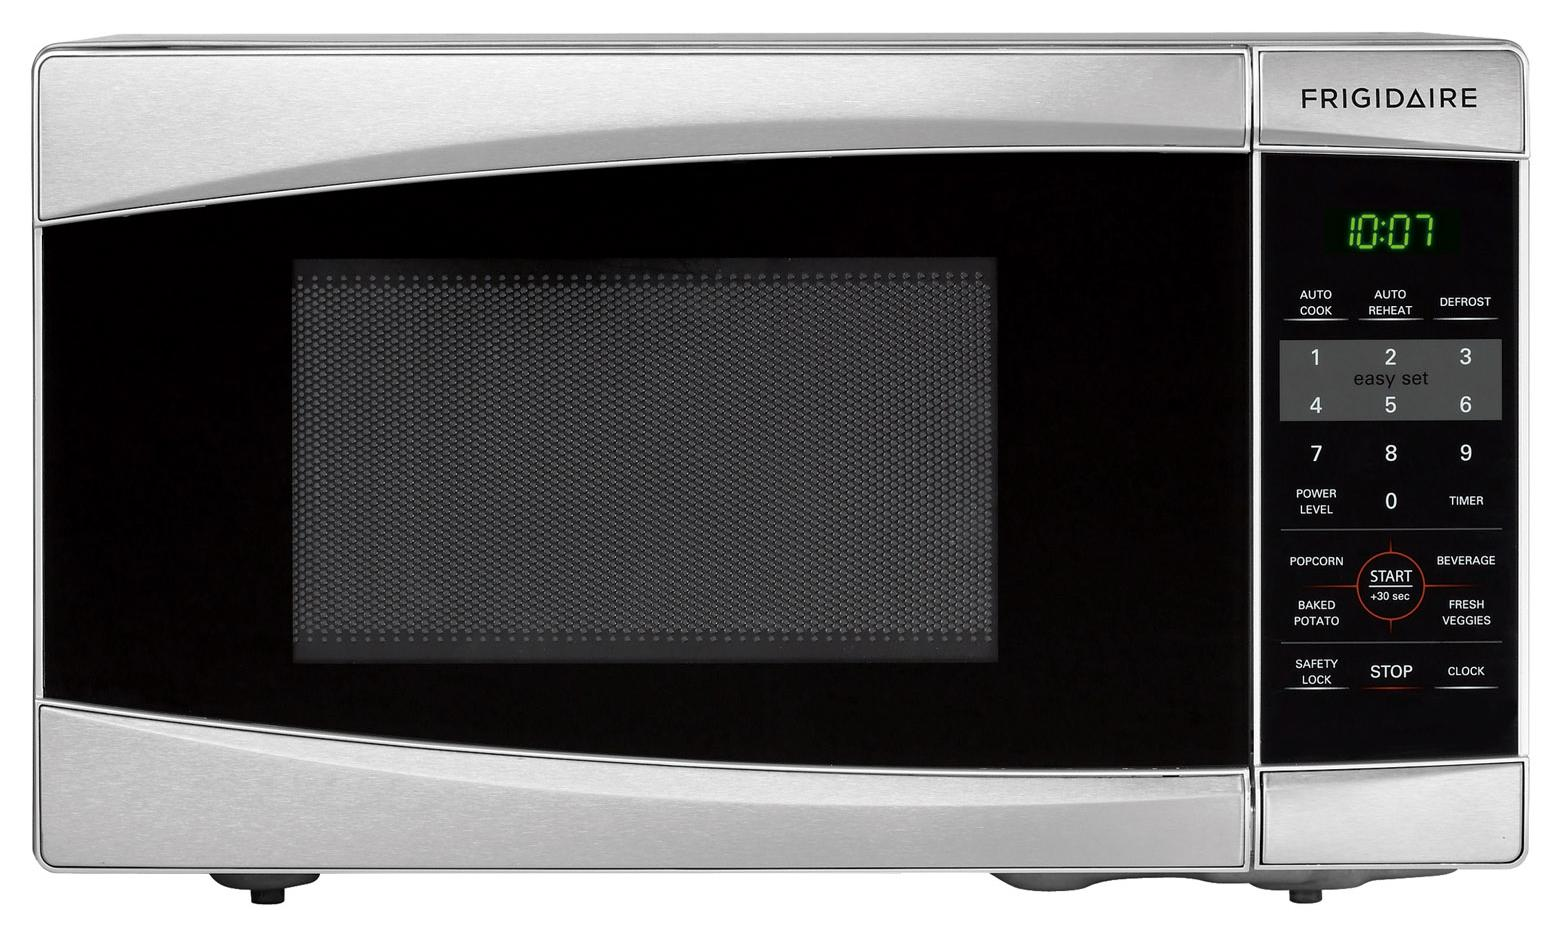 Frigidaire Microwaves 0.7 Cu. Ft. Countertop Microwave - Item Number: FFCM0734LS